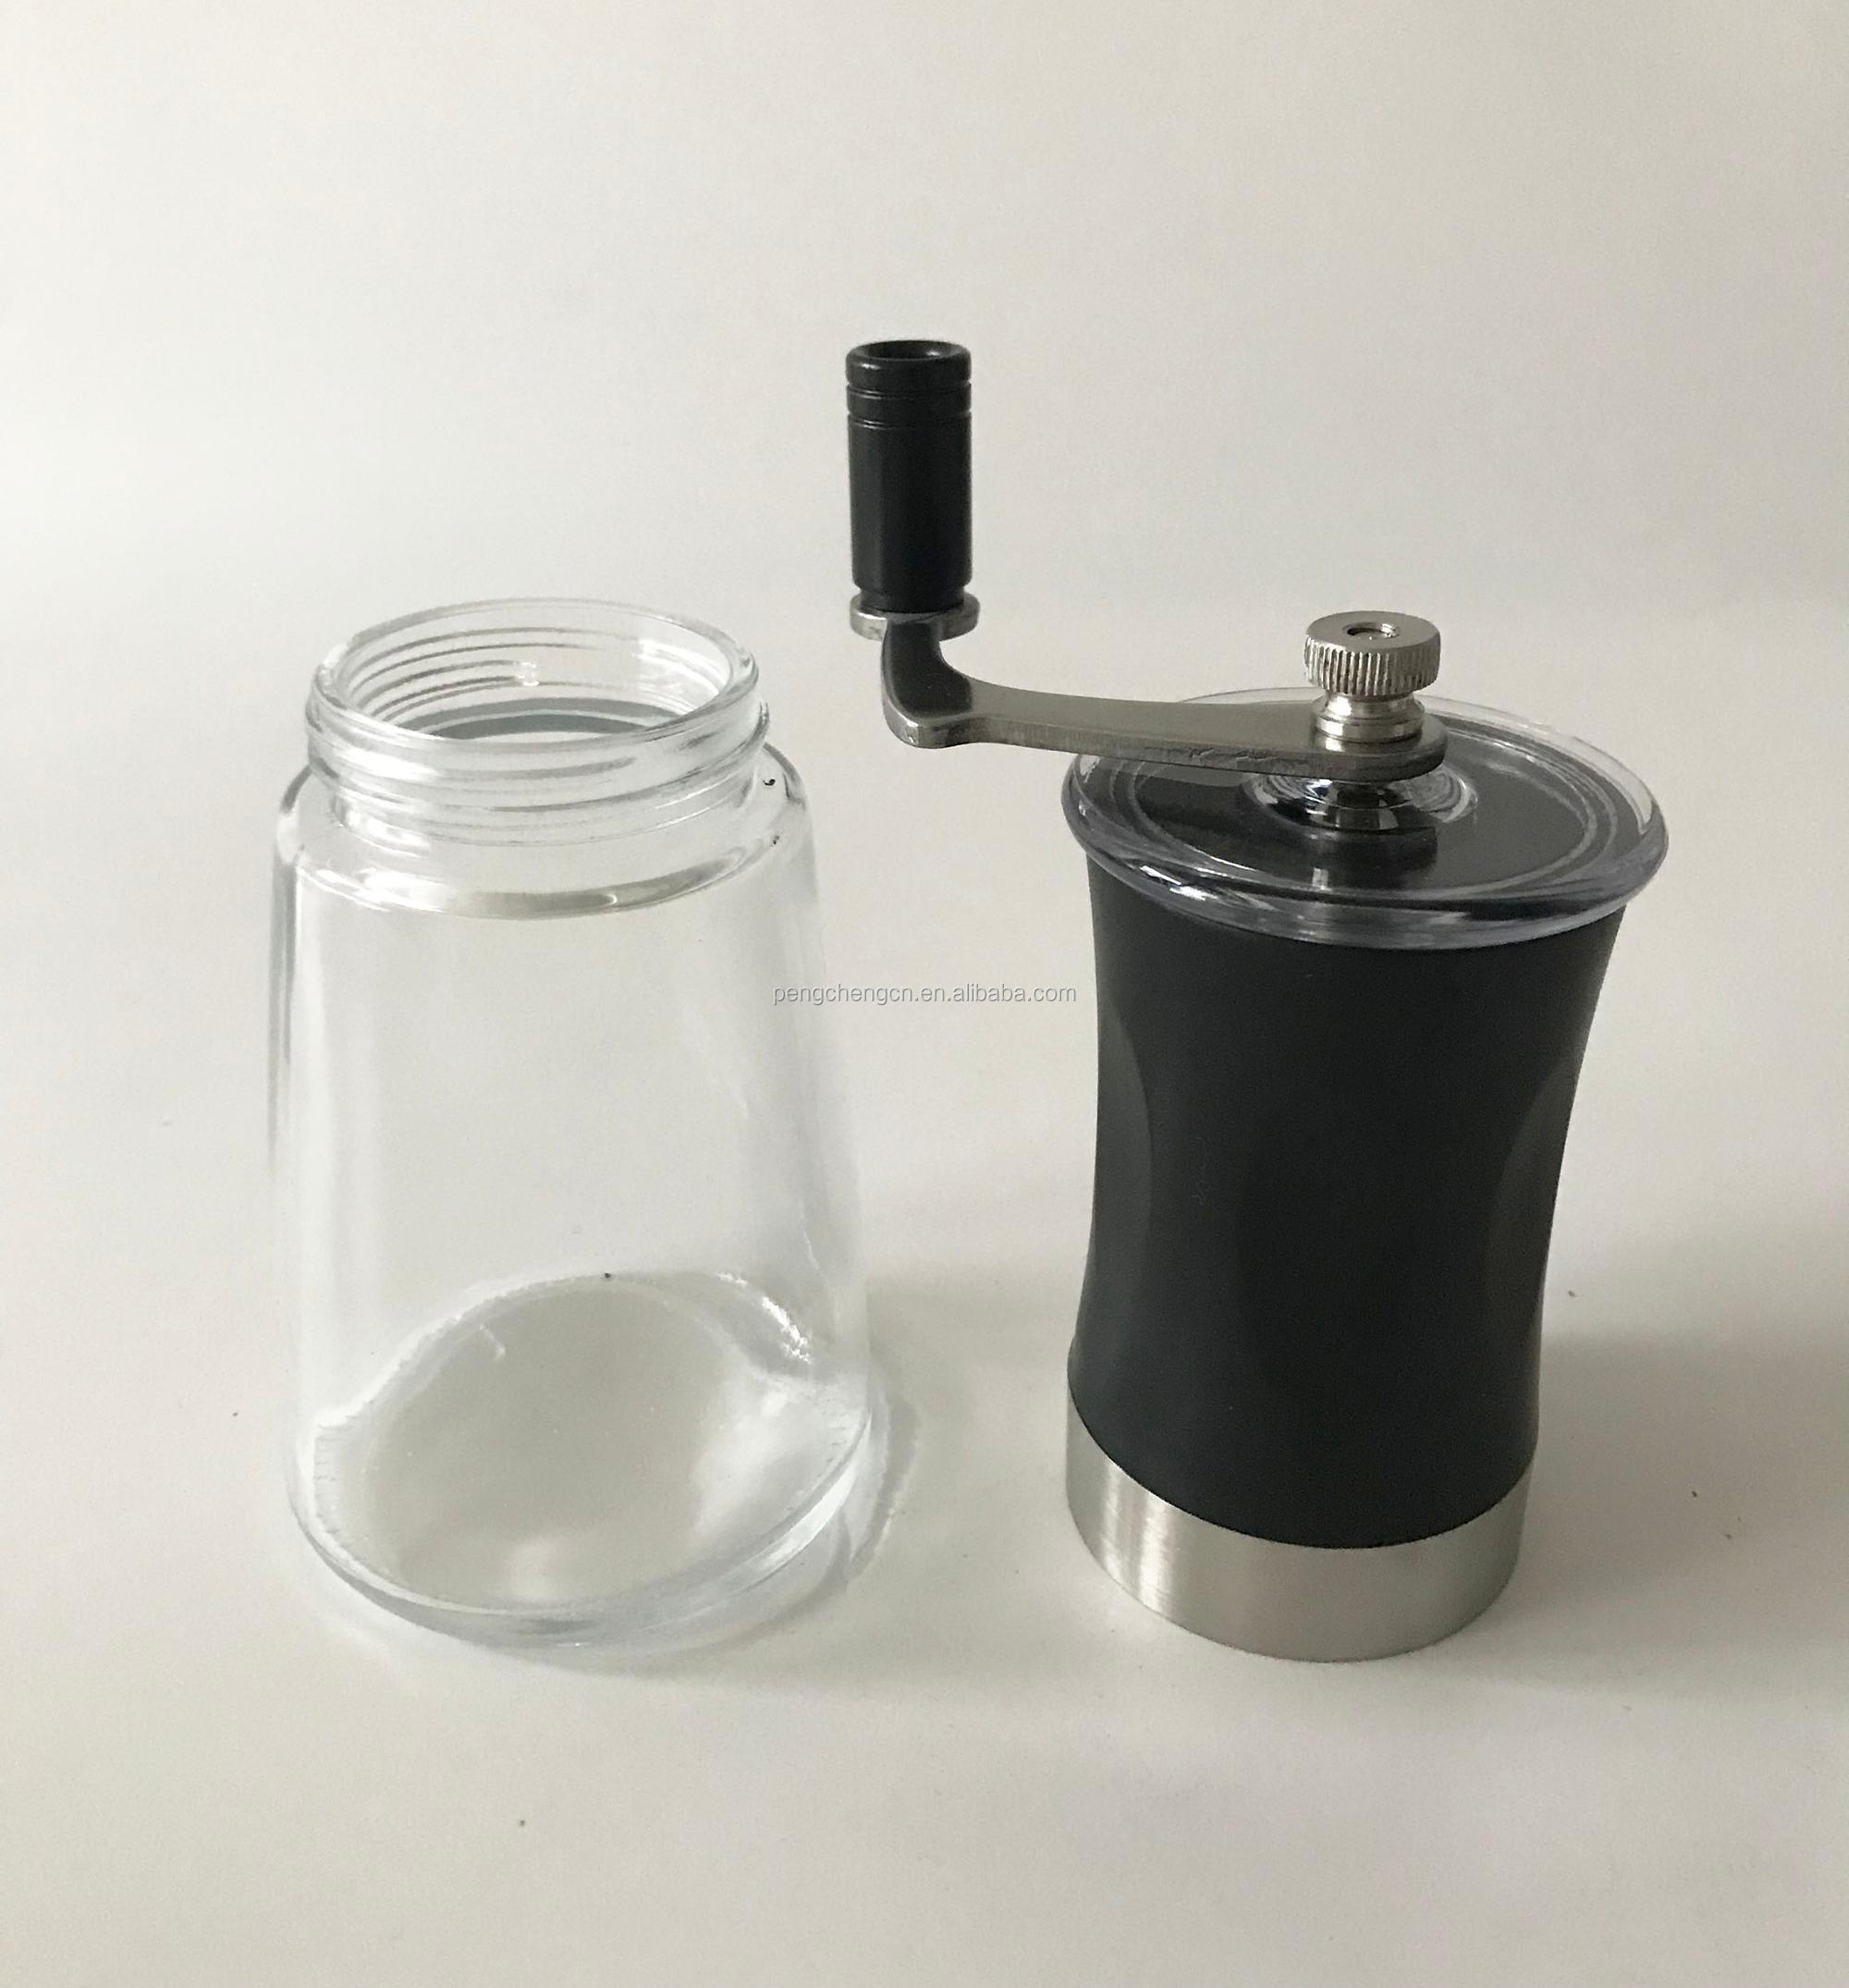 hot selling food safe manual coffee grinder with glass bottle